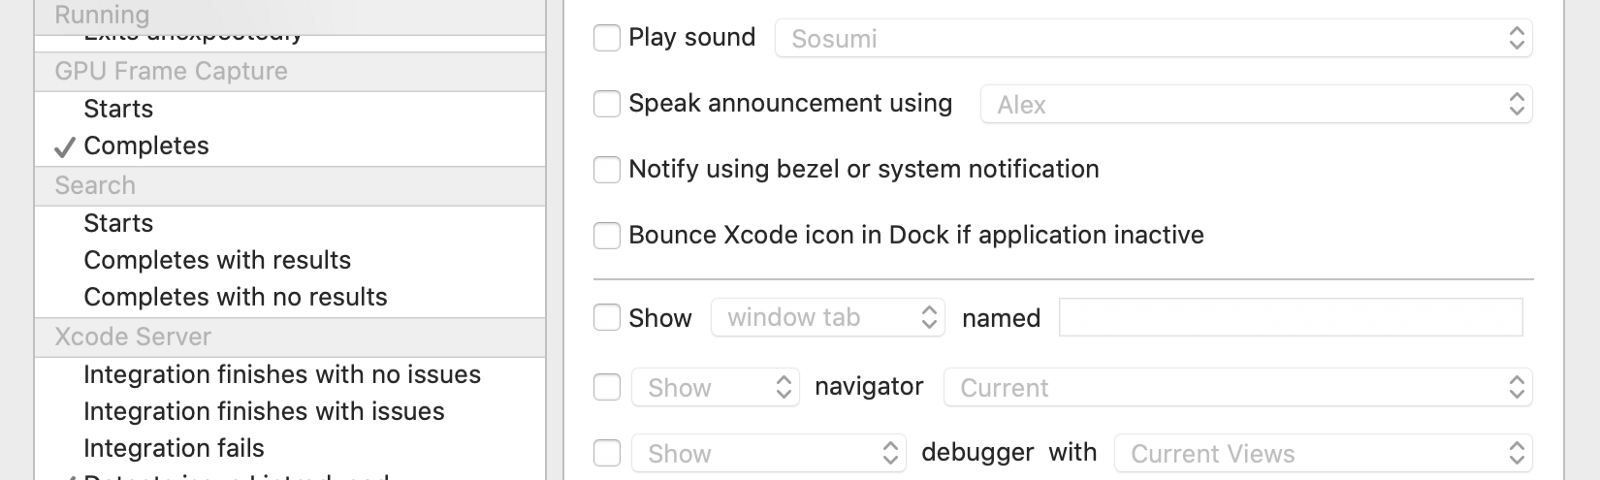 Xcode → Behaviors →Tap On + Button -> Name the custom workflow as pod-install → Run Script → Select the script